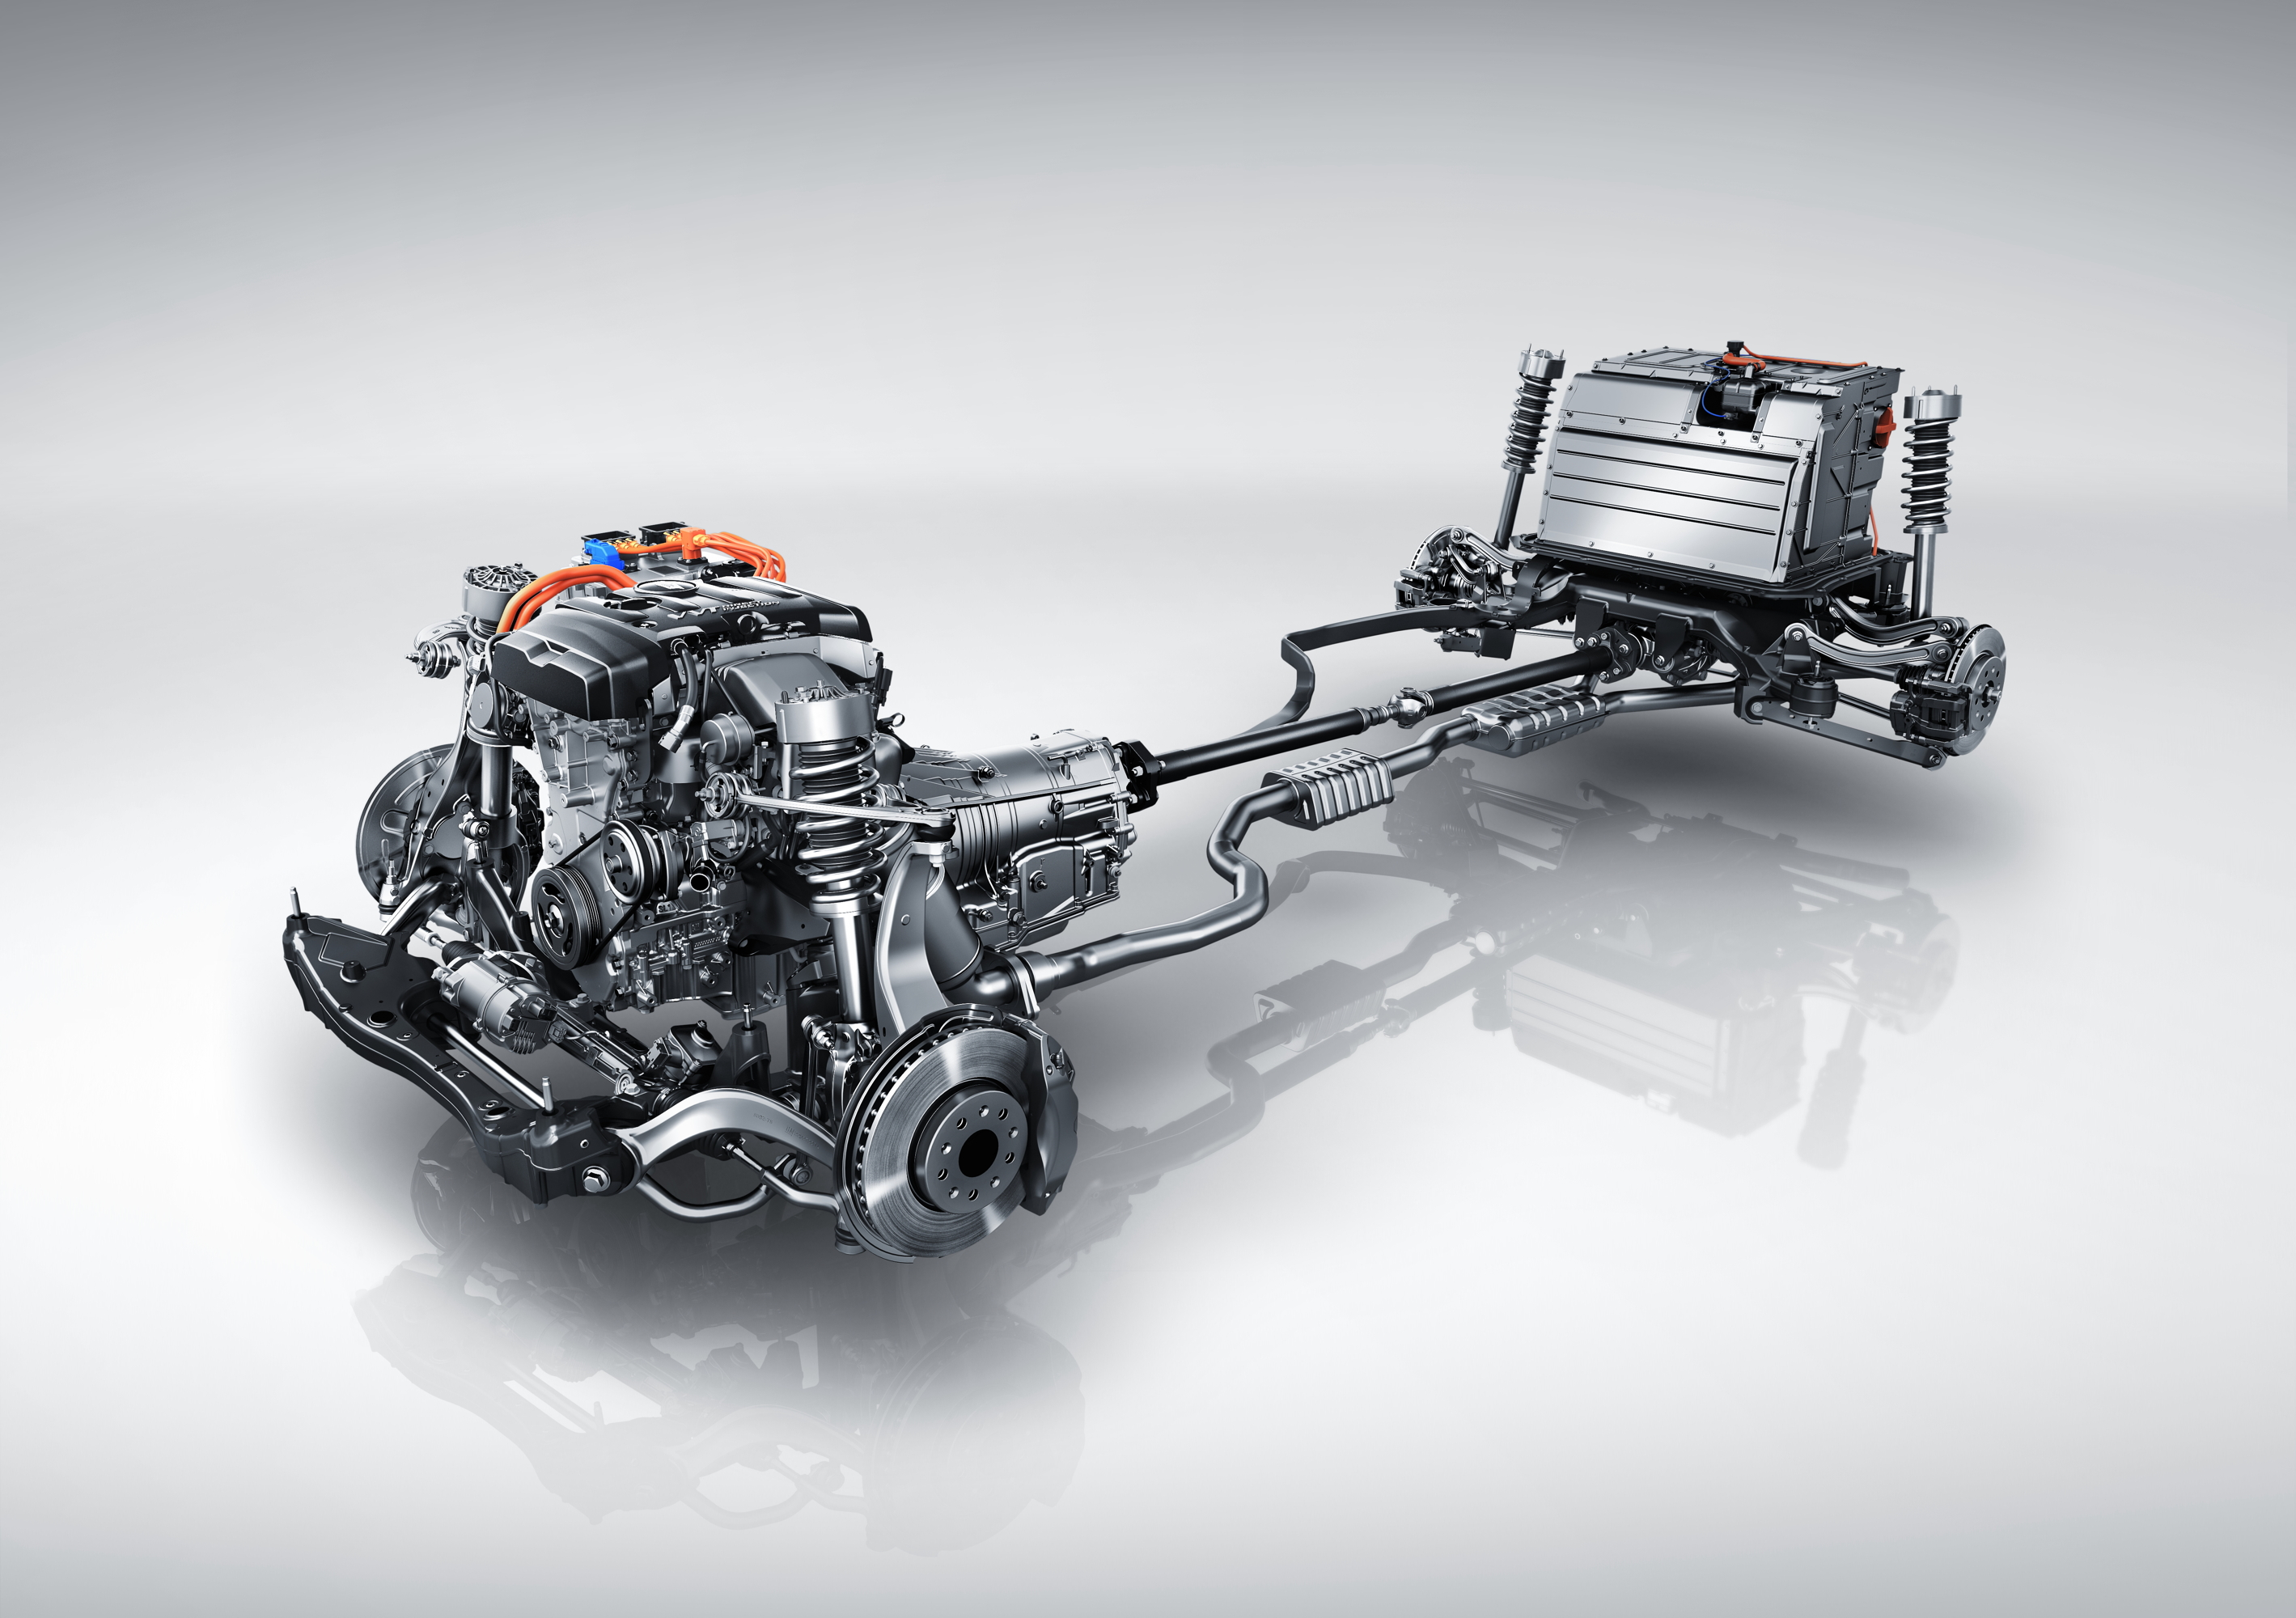 The Cadillac CT6 Plug-In Hybrid goes on sale in North America in